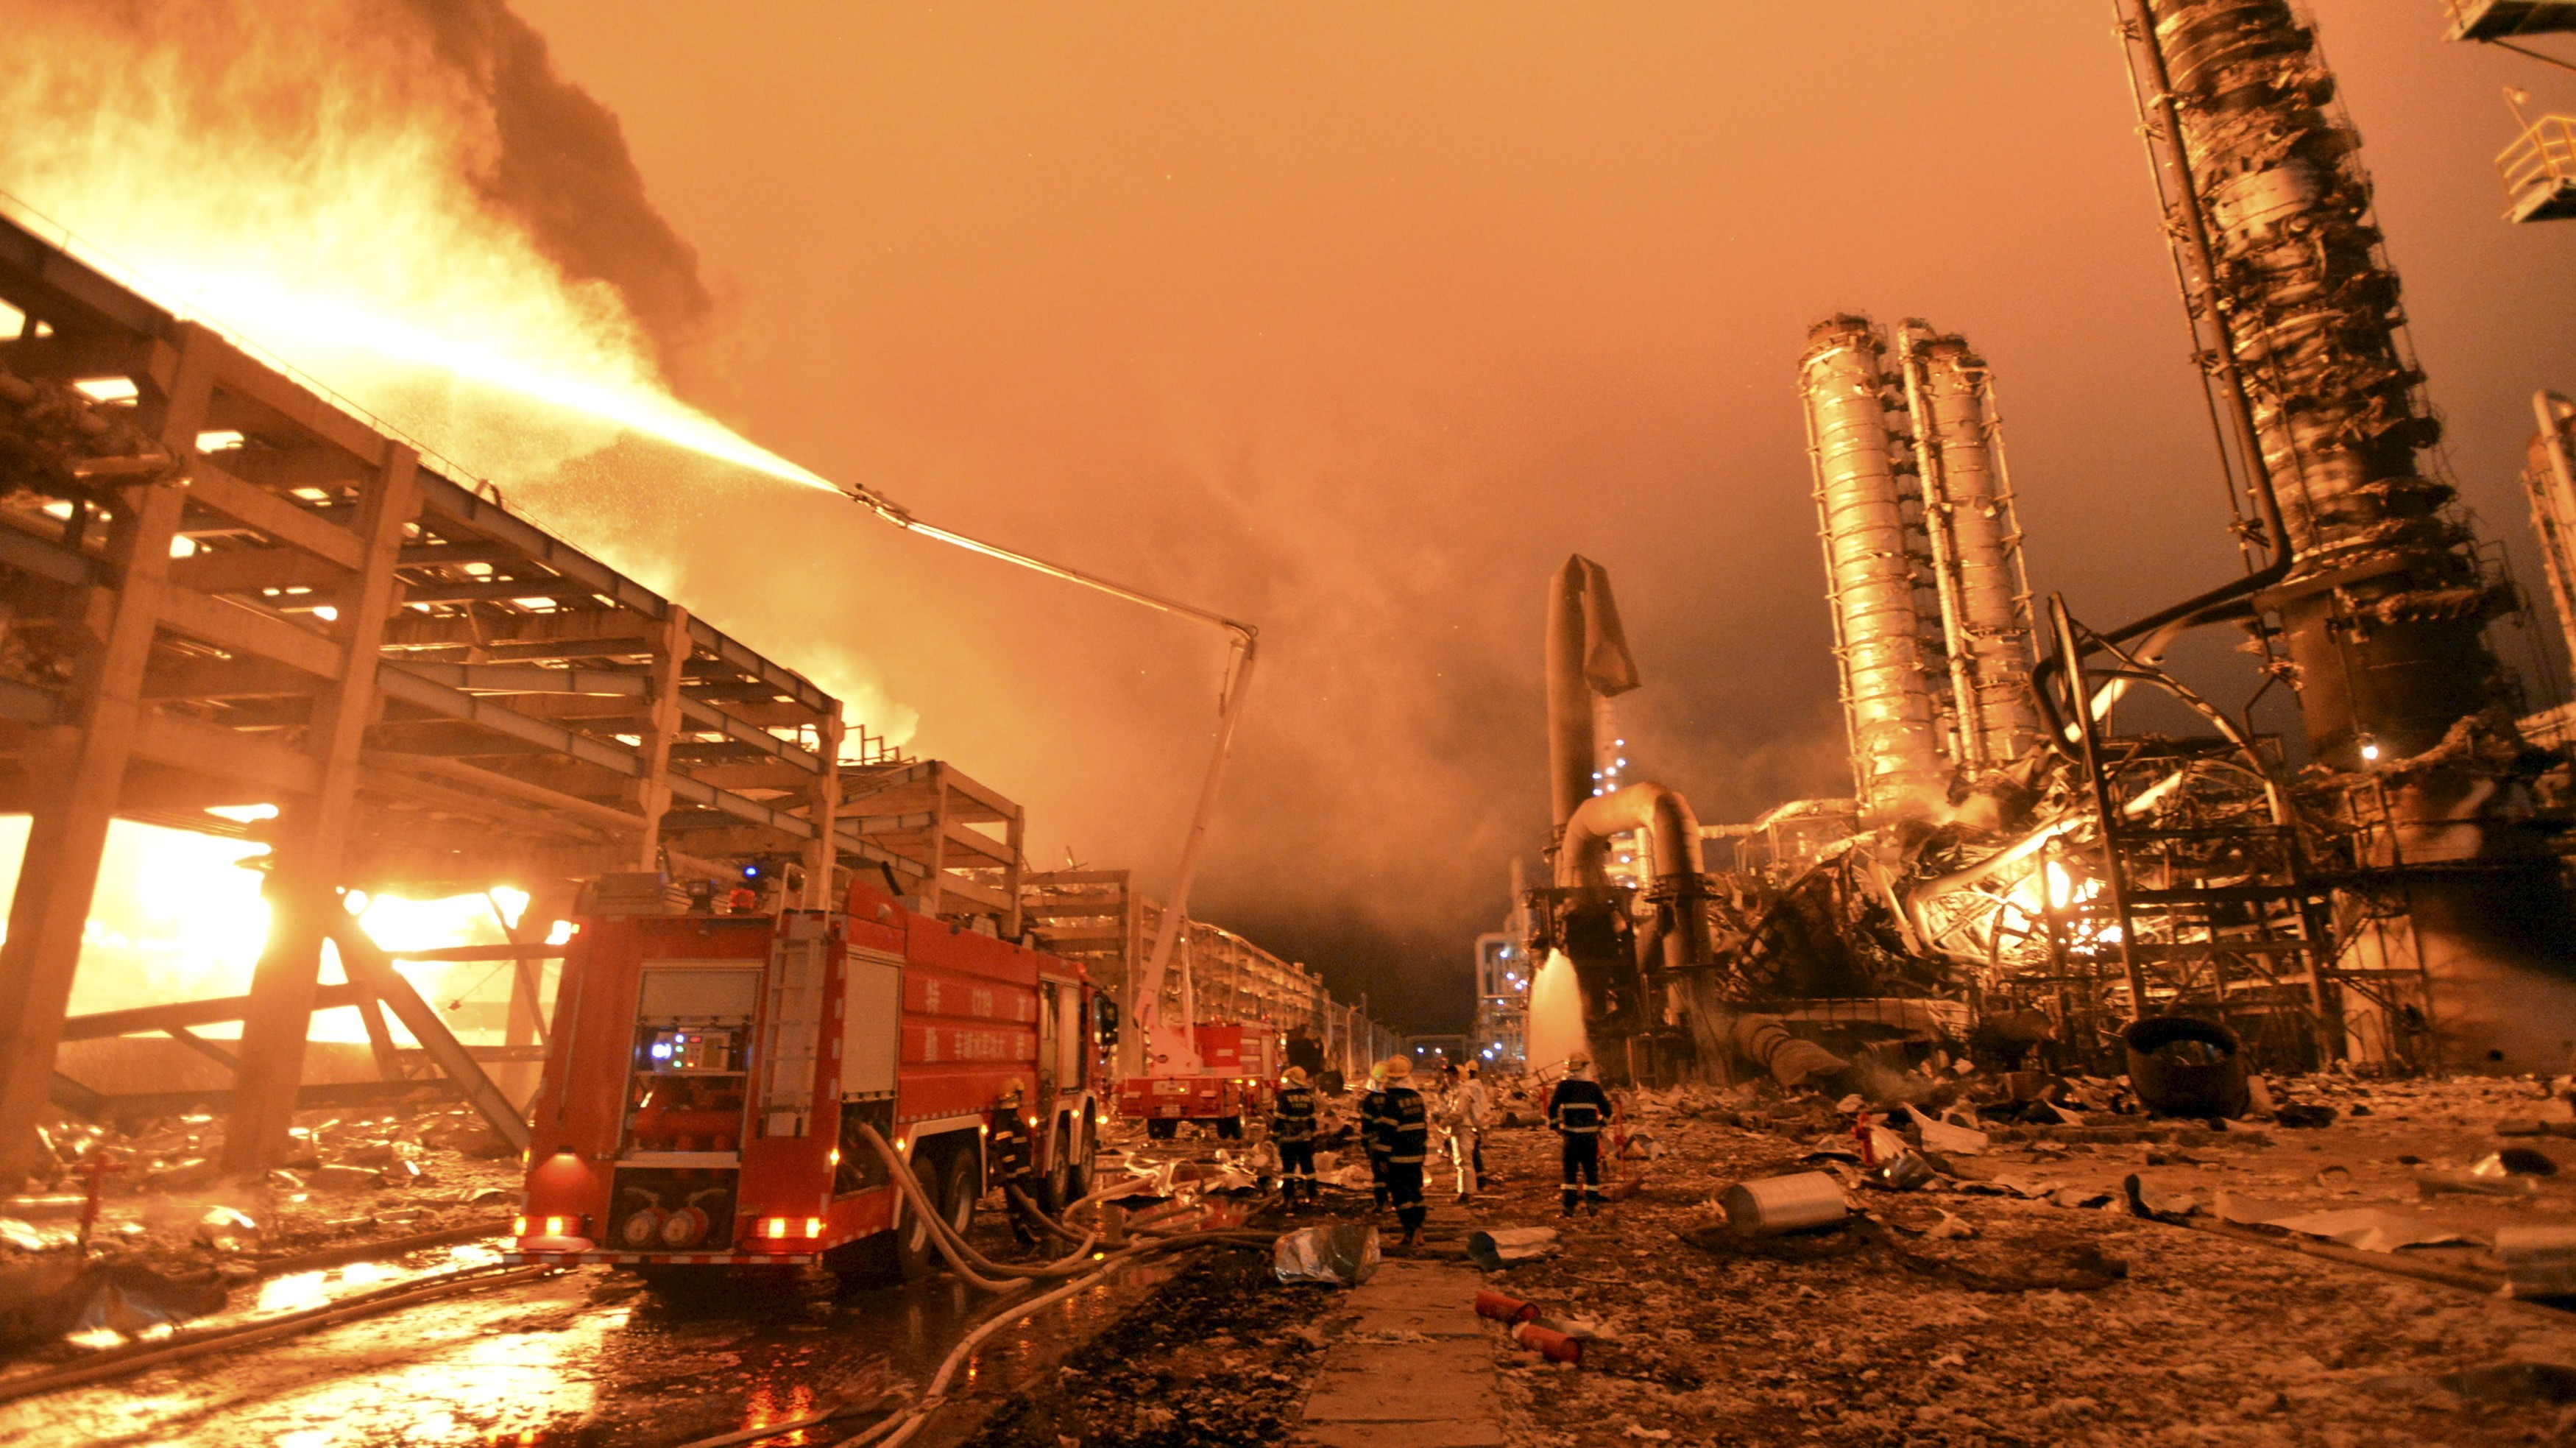 Massive Explosion in Zhangzhou, China Highlights Chemical Plant Risks